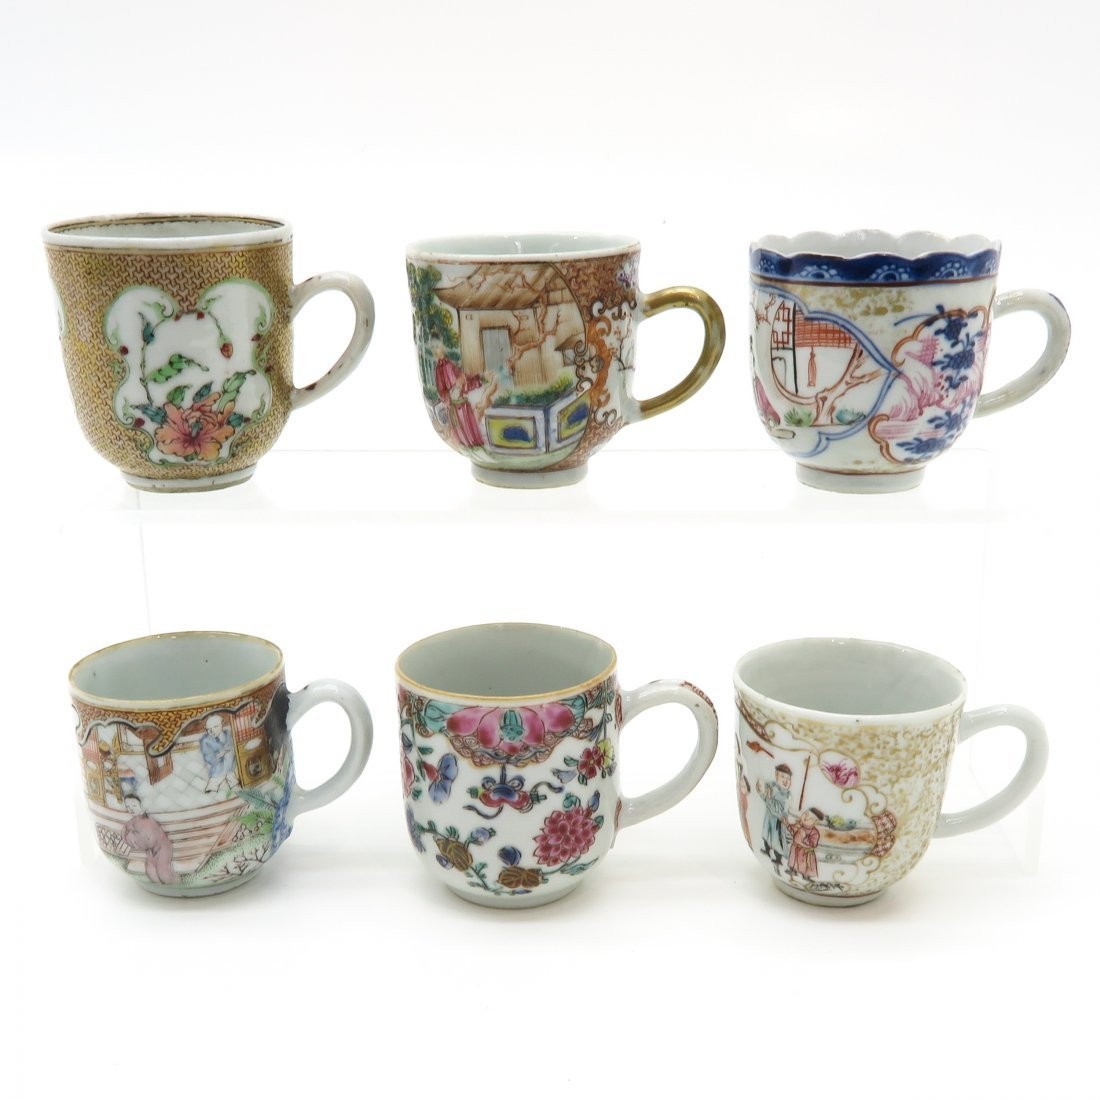 Lot of 18th Century China Porcelain Cups